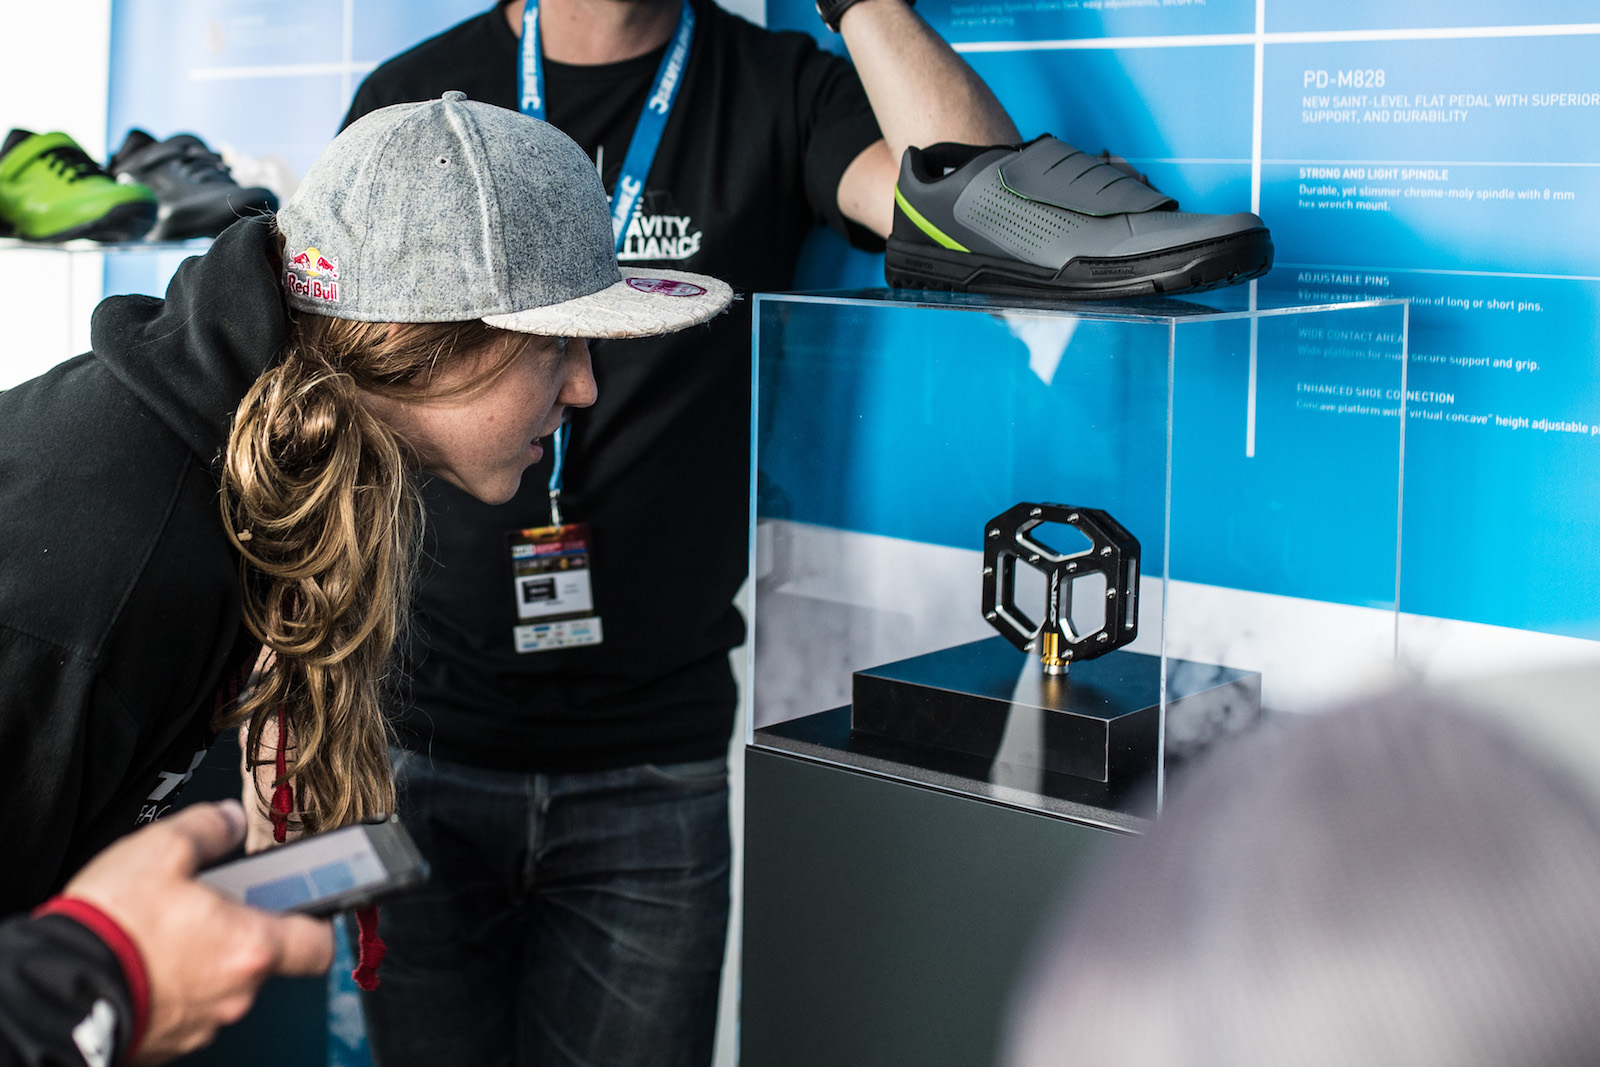 eb0f05518c0 For more than 25 years SHIMANO's has been examining feet to learn exactly  what mountain bikers need from lasts, sizes, supports, grips and styles, ...